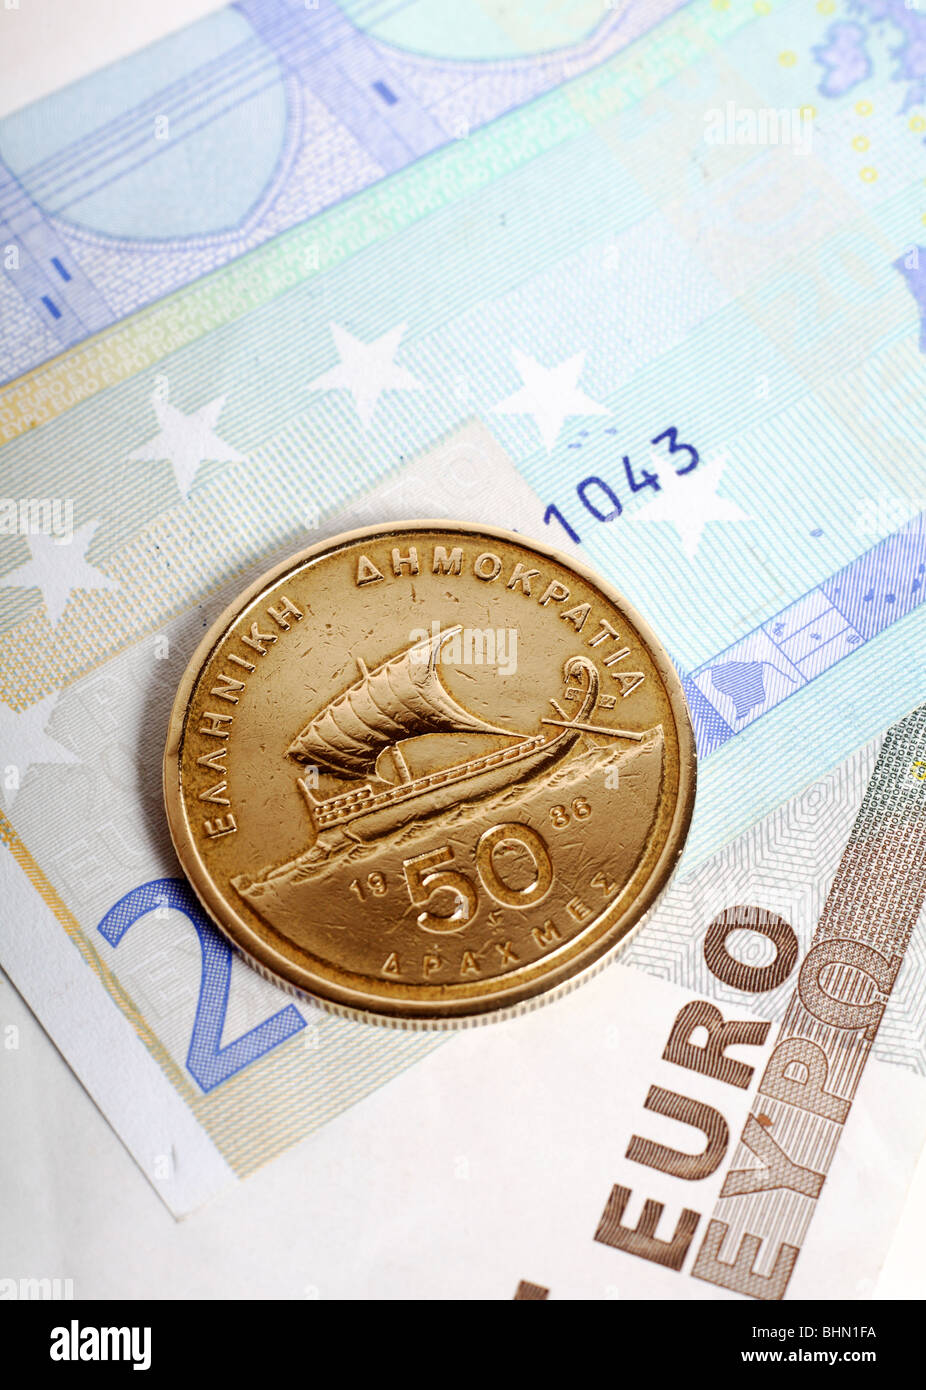 A fifty drachma coin on euro notes which replaced the currency. Greece's economic woes are  seen as a threat - Stock Image